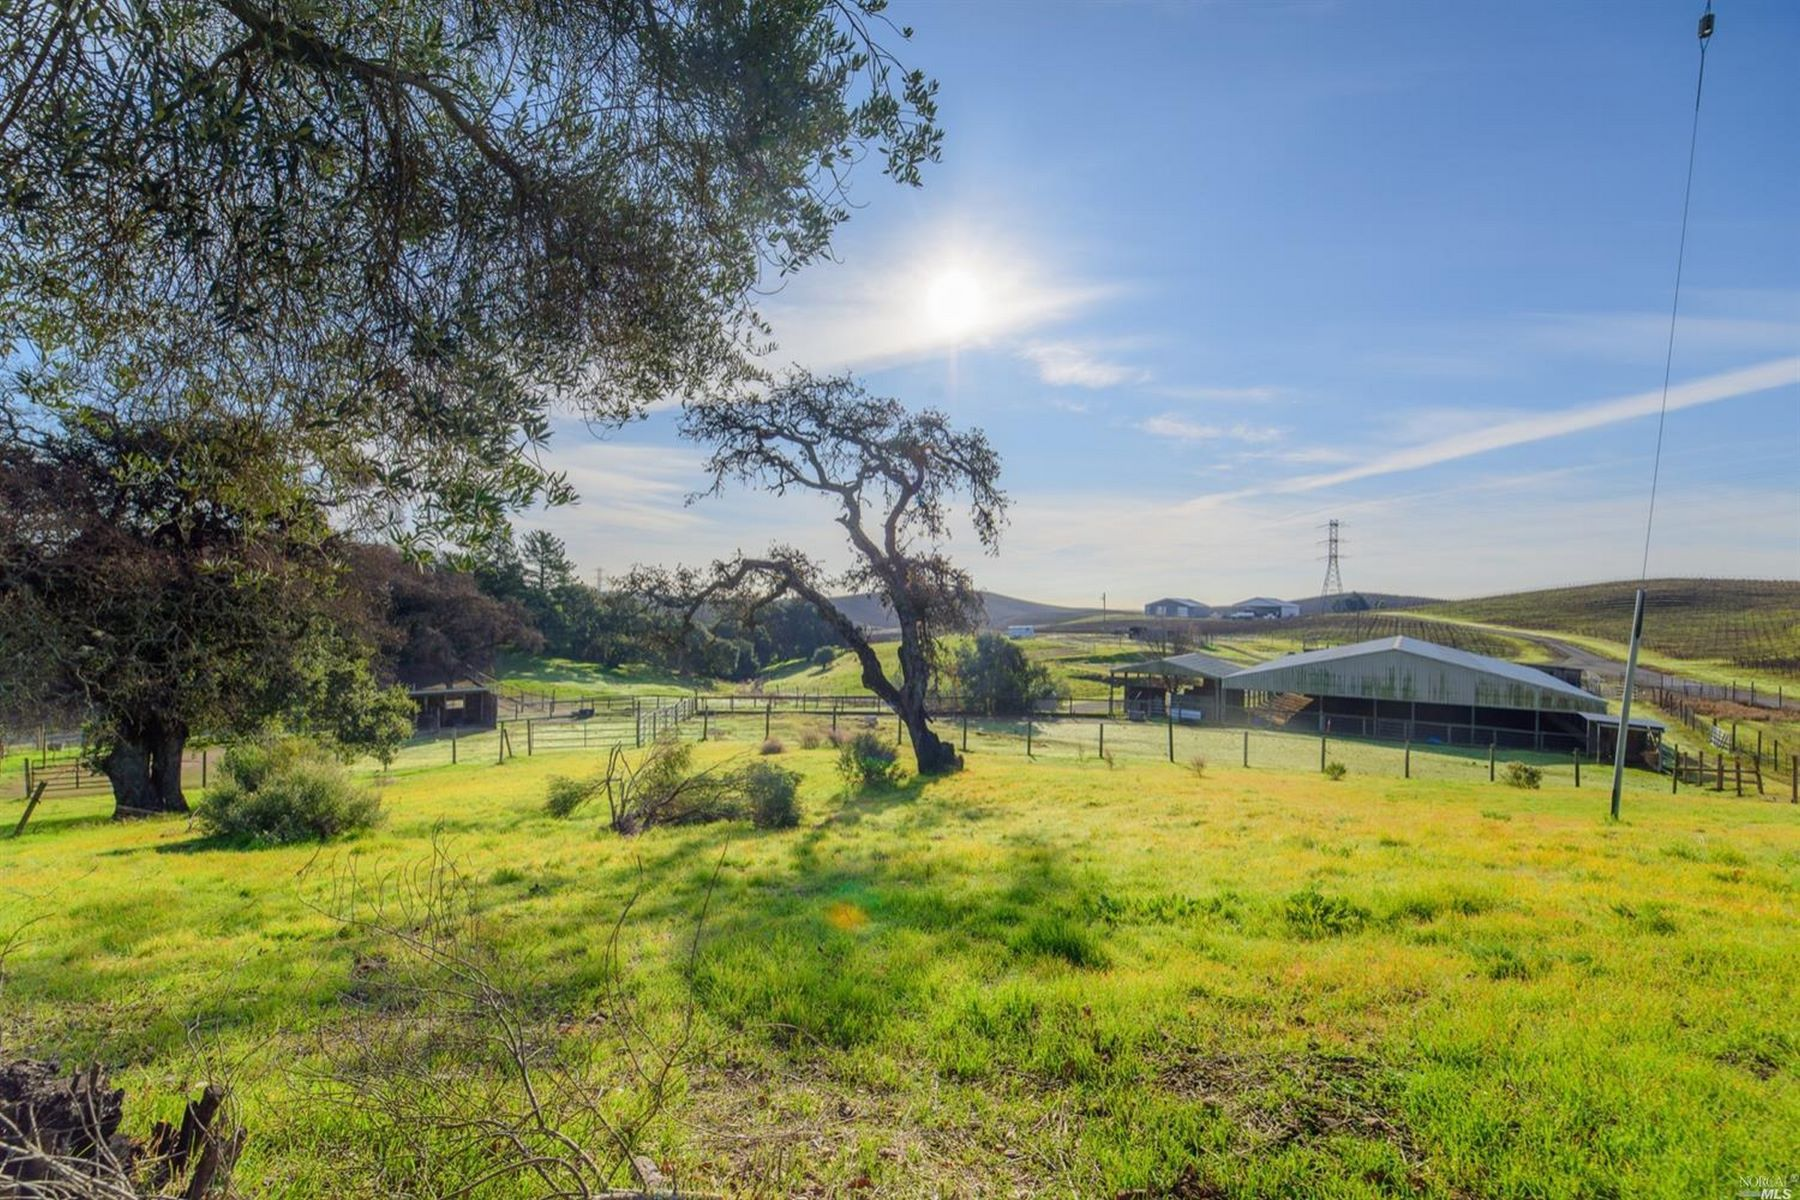 Single Family Homes for Active at Equestrian/Horse Property in Napa Wine Country 5945 Haire Lane Napa, California 94558 United States